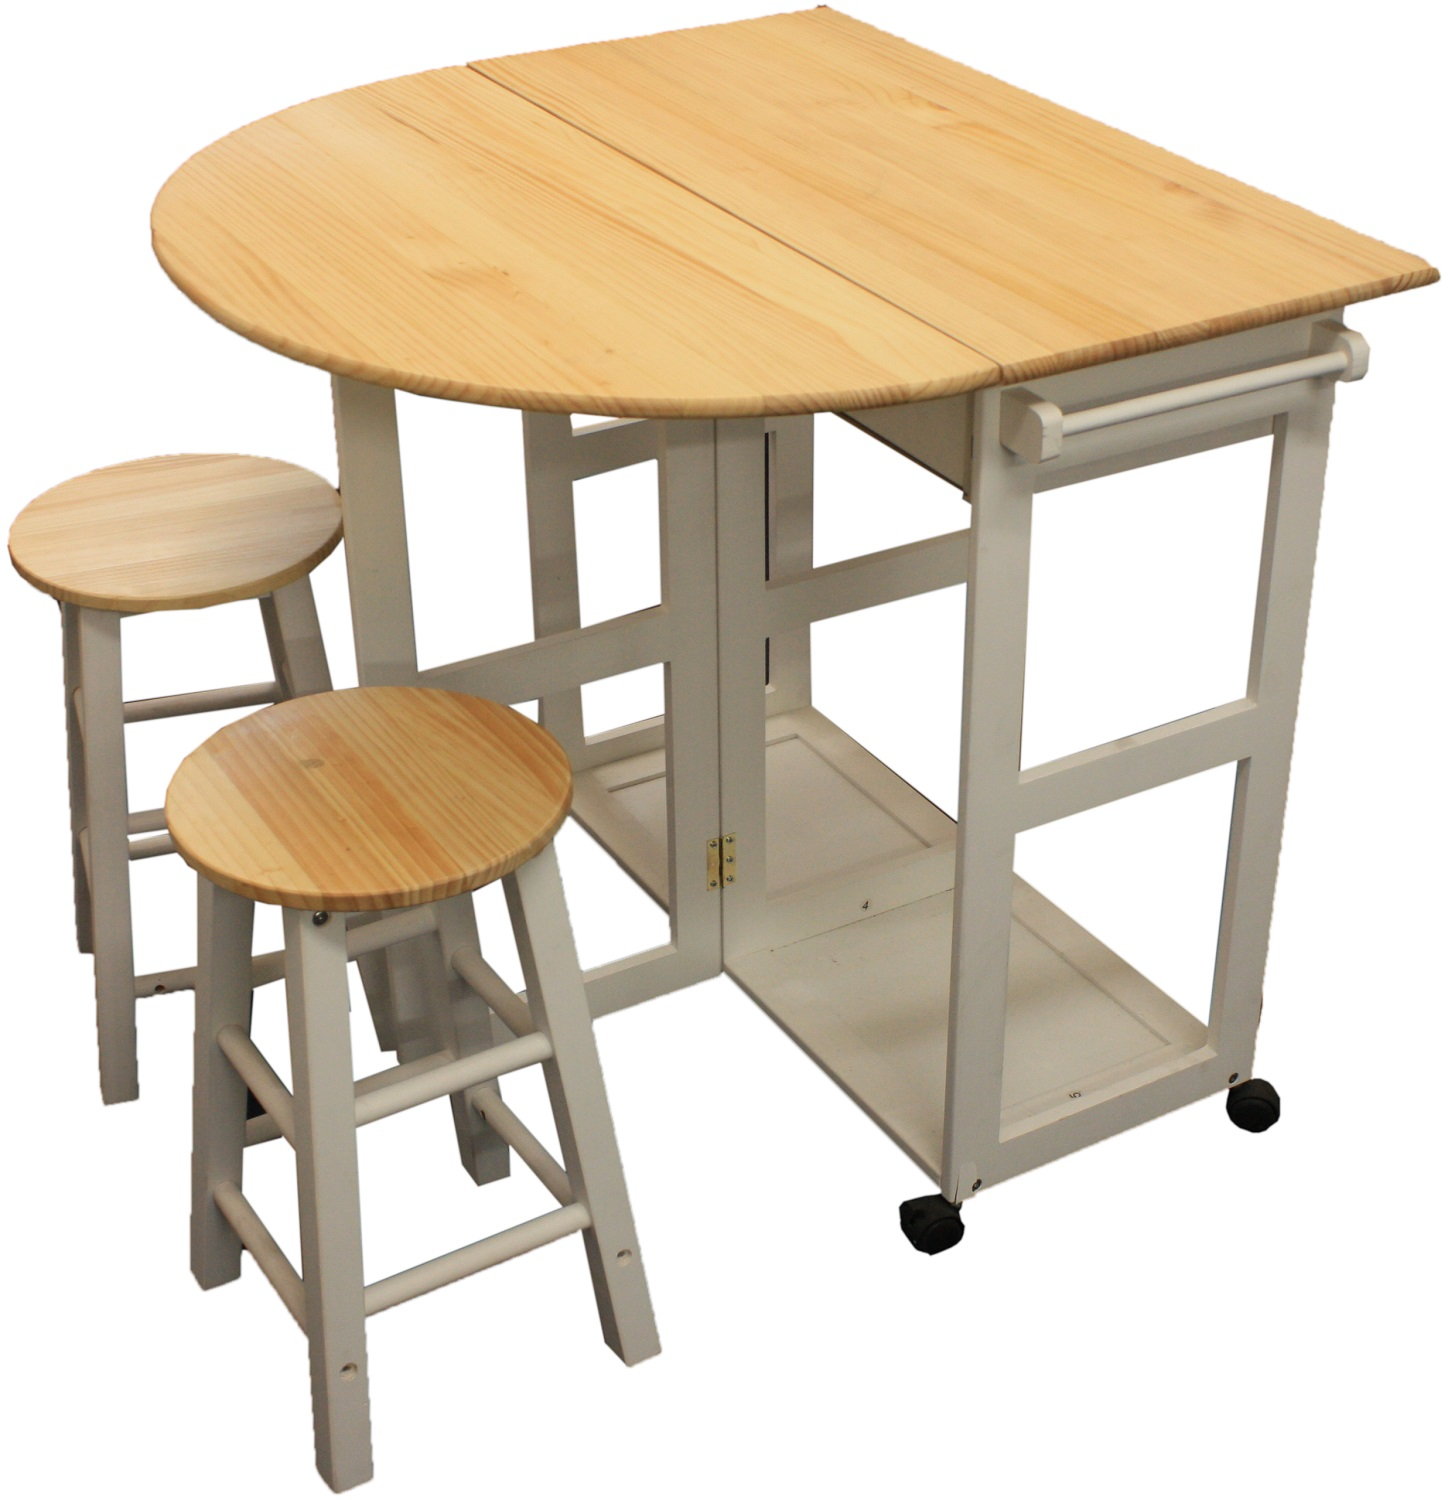 Maribelle folding table and stool set kitchen breakfast for Kitchen table with stools